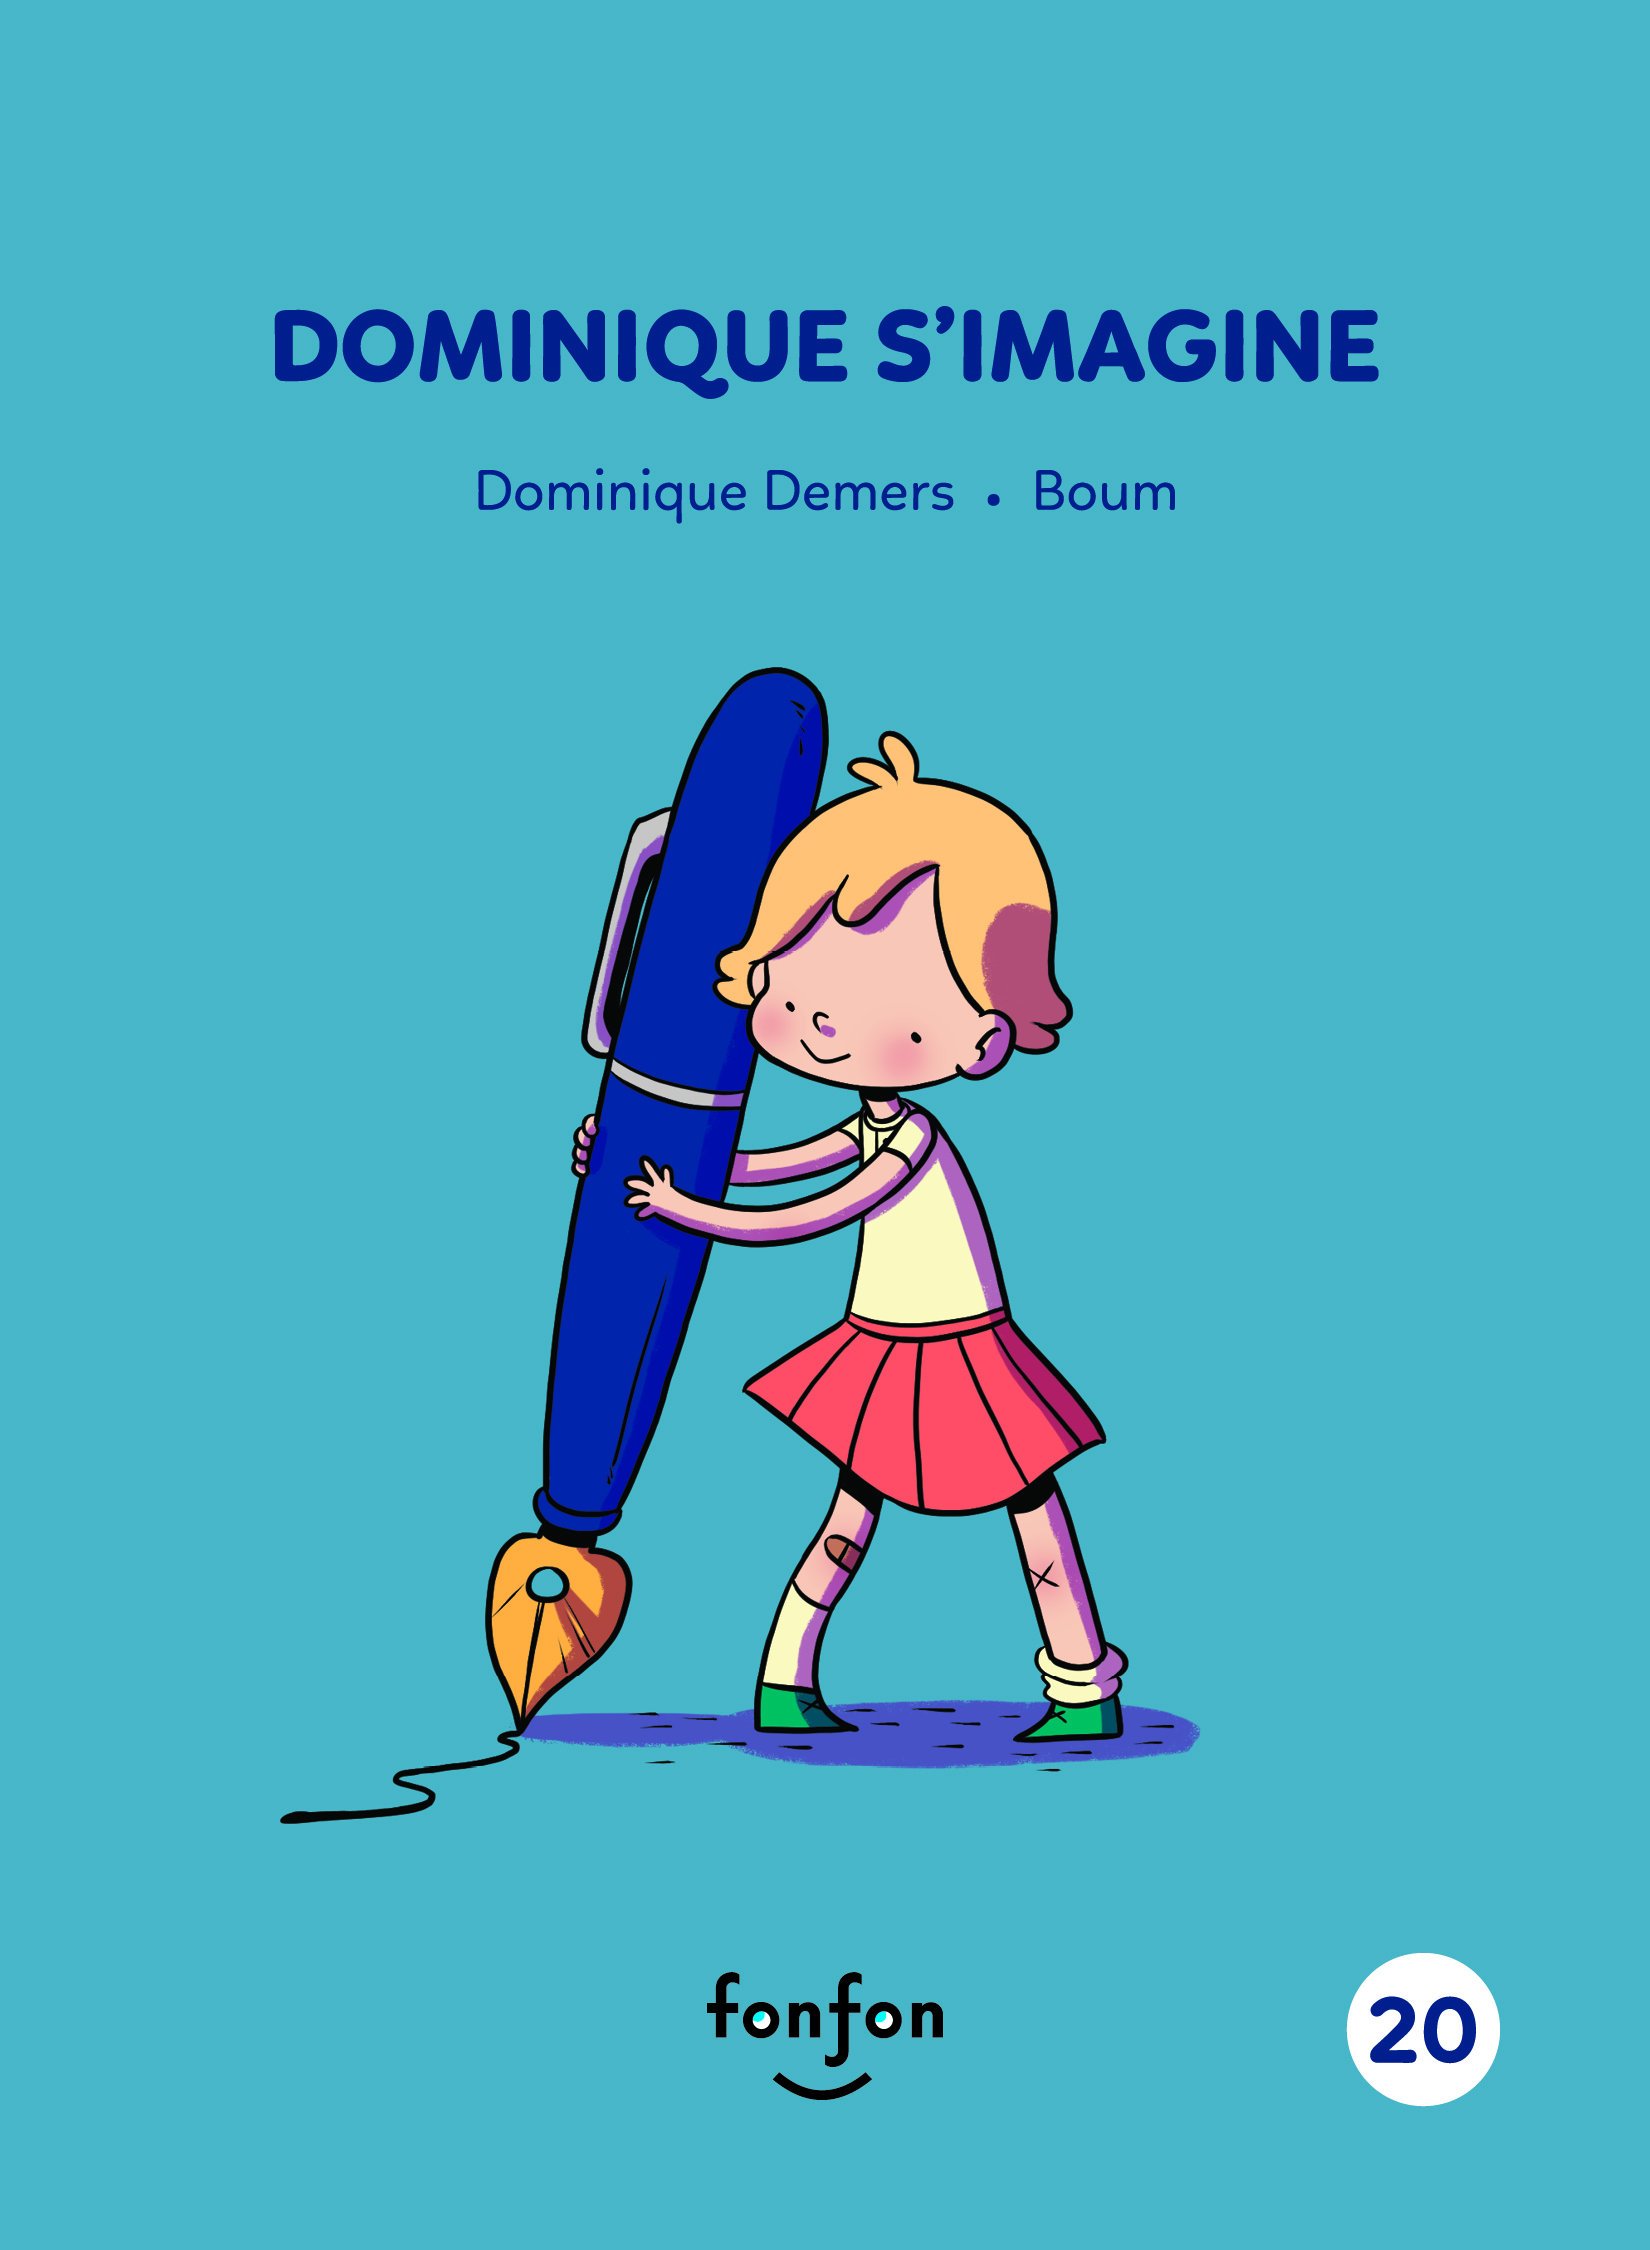 Dominique s'imagine